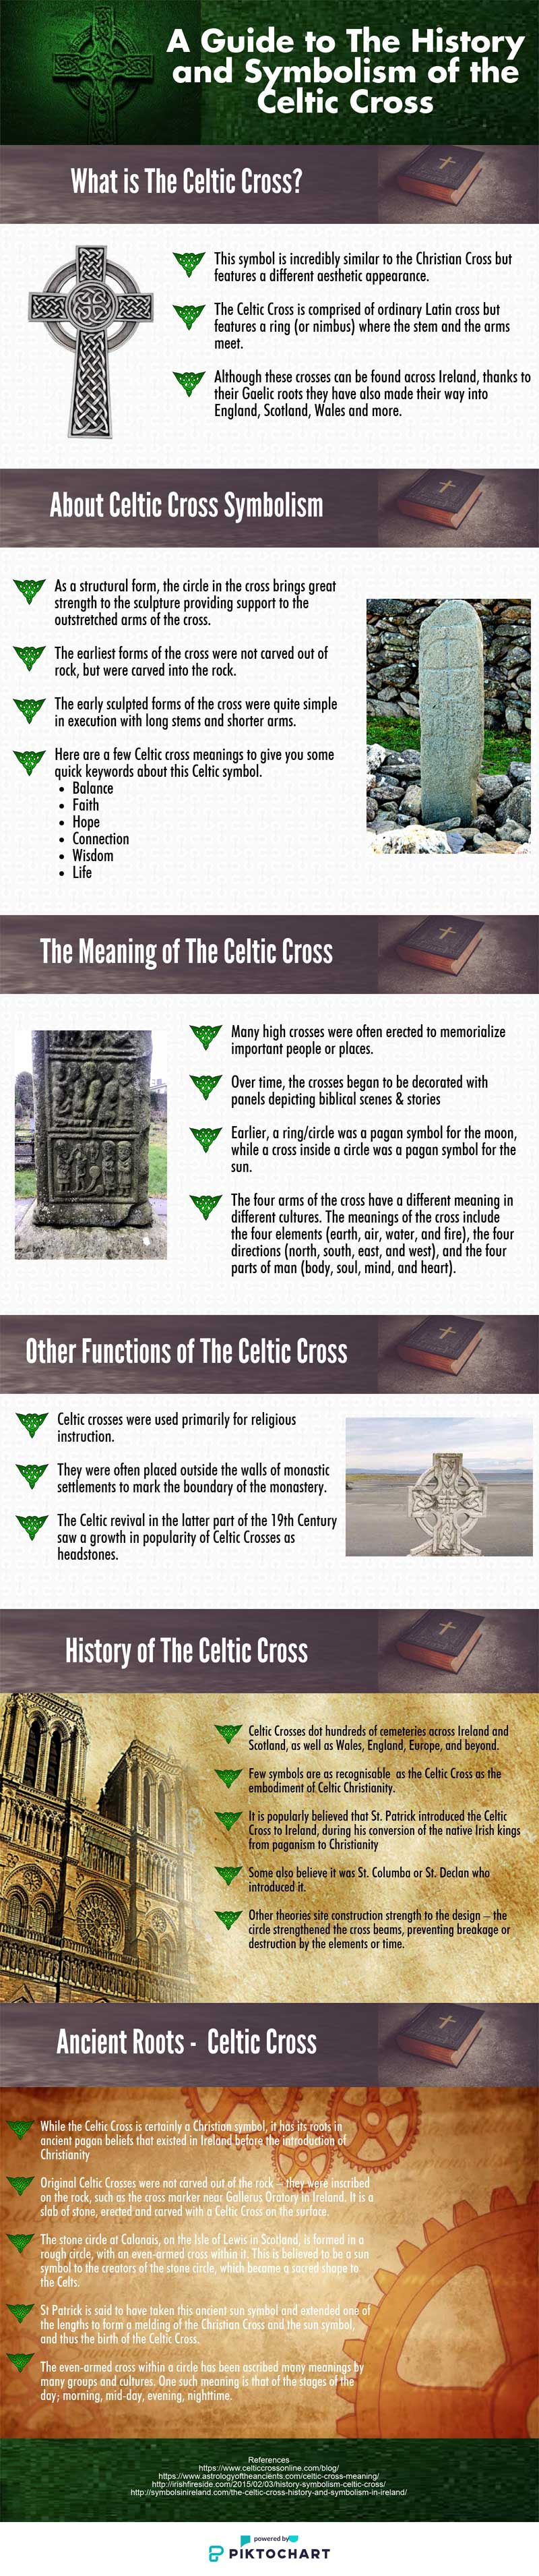 History, meaning and symbolism of the Celtic Cross